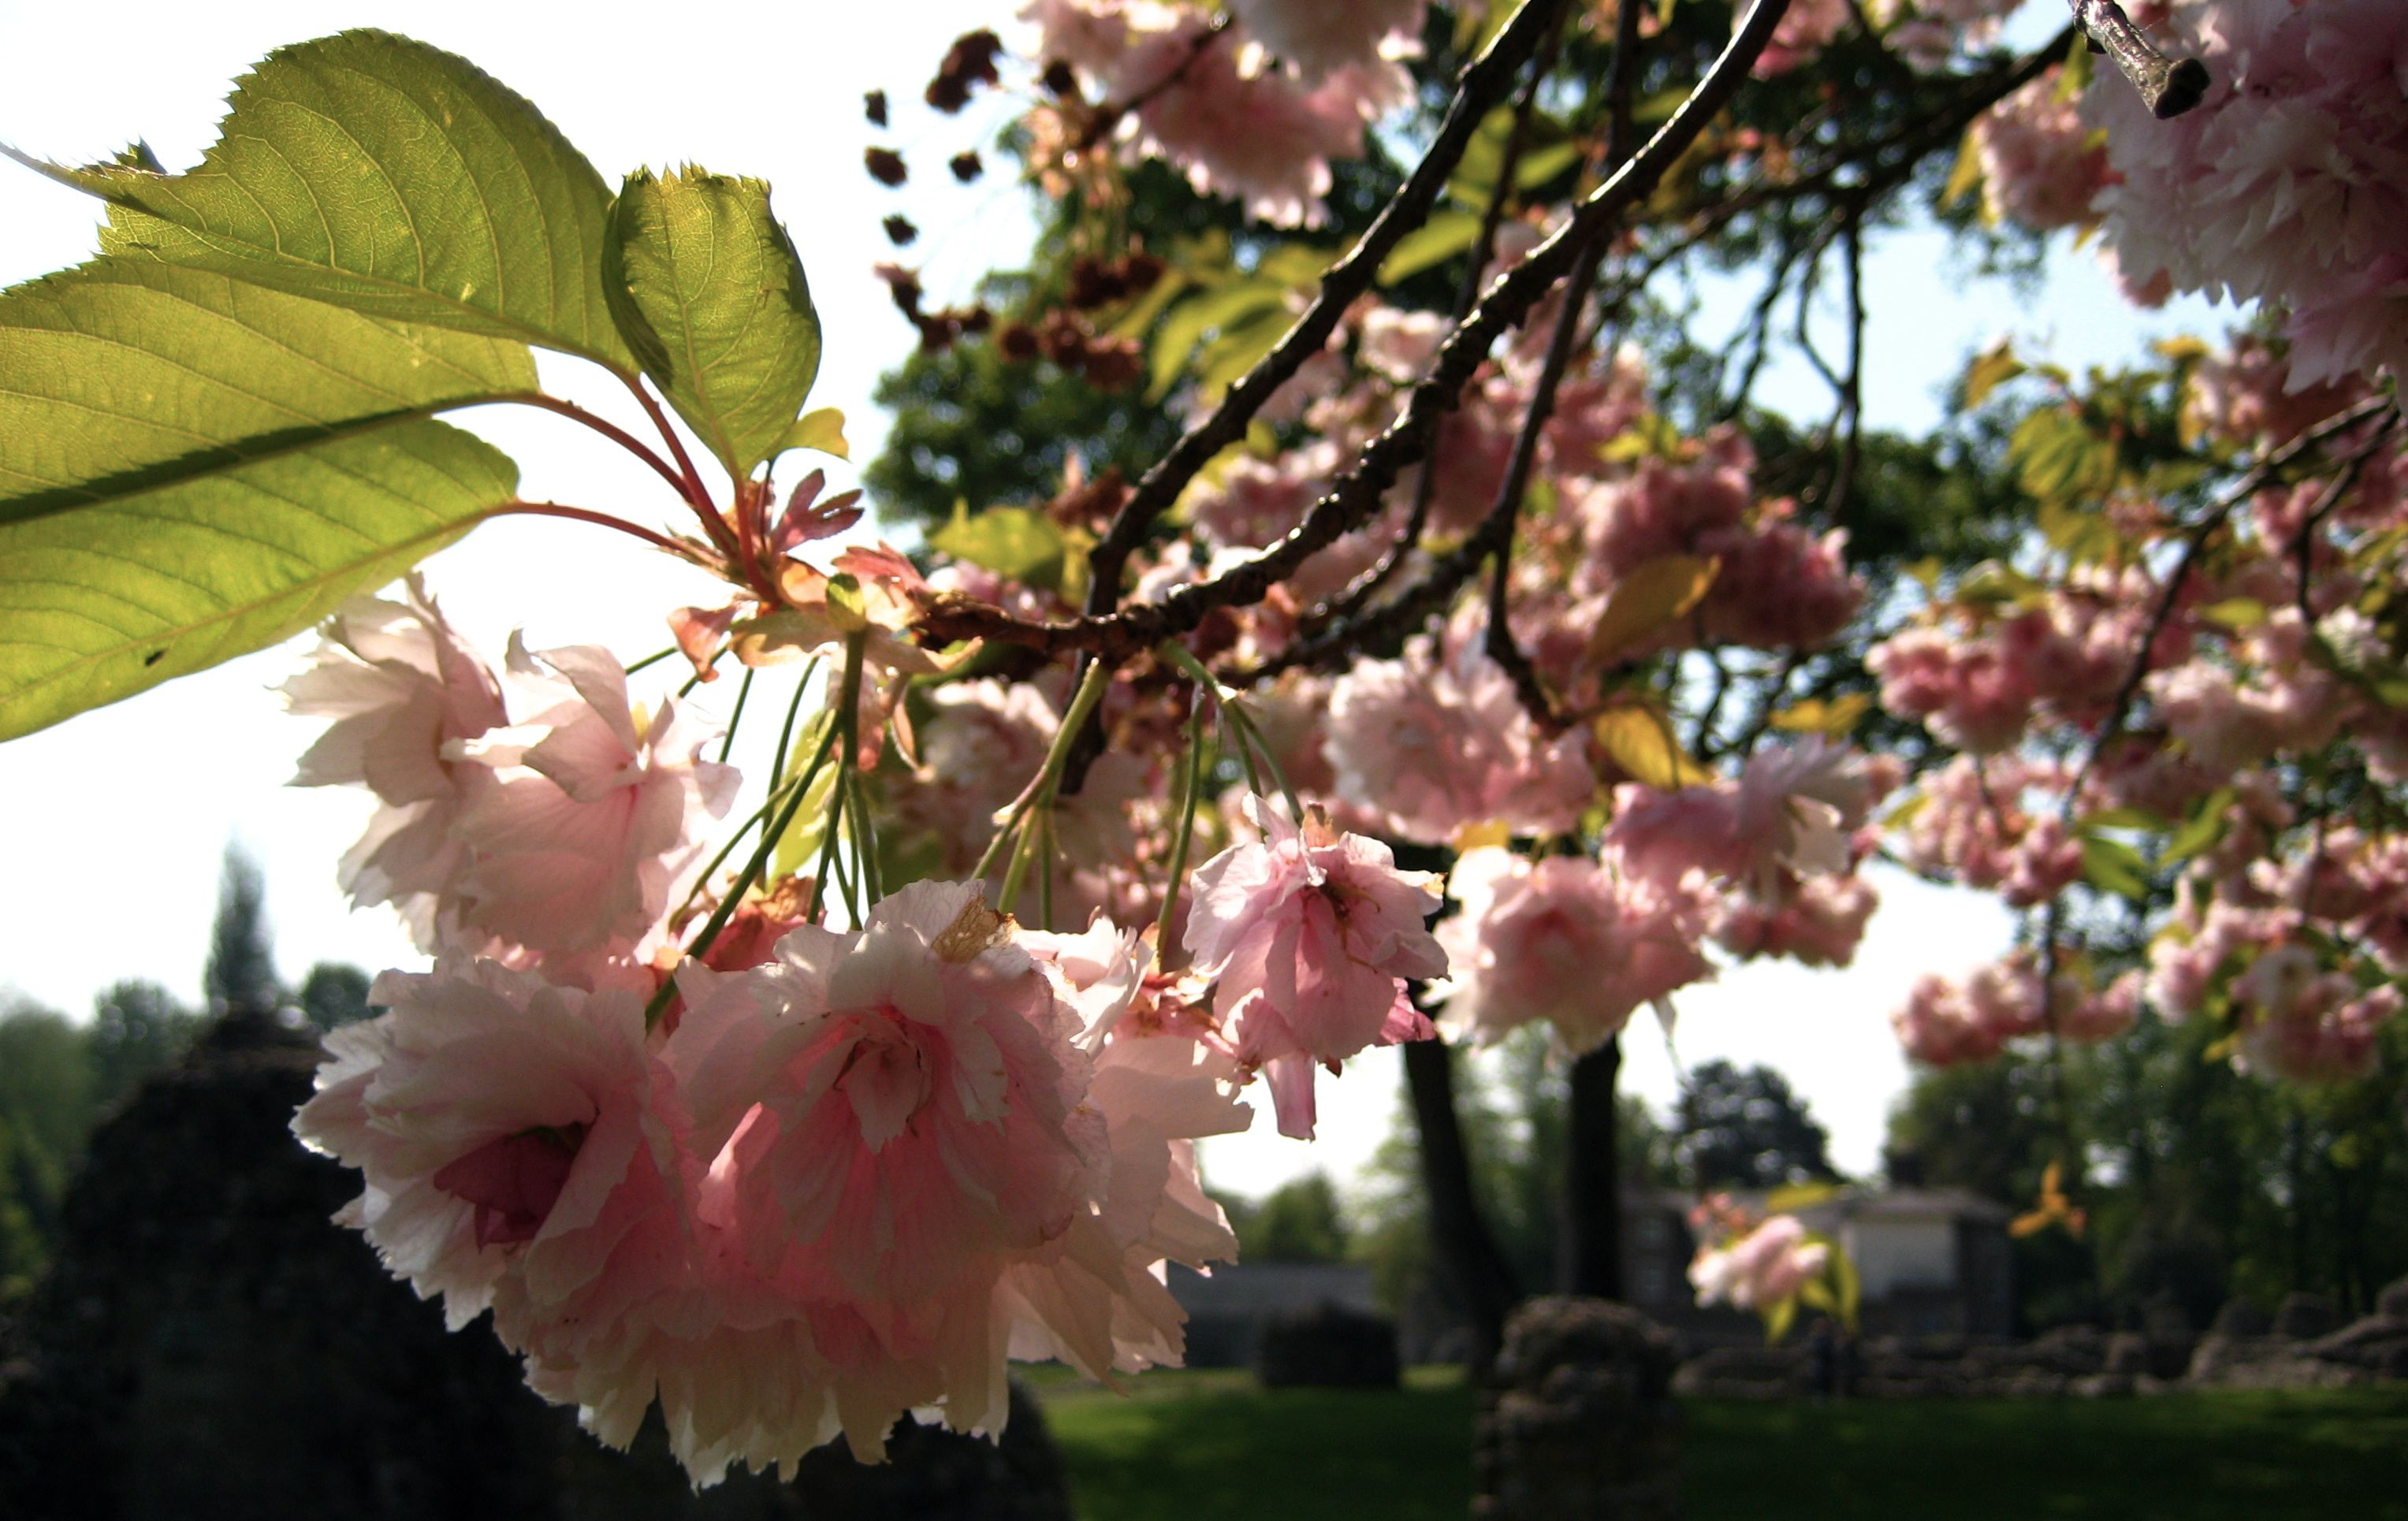 Blossoms in Bury St. Edmonds